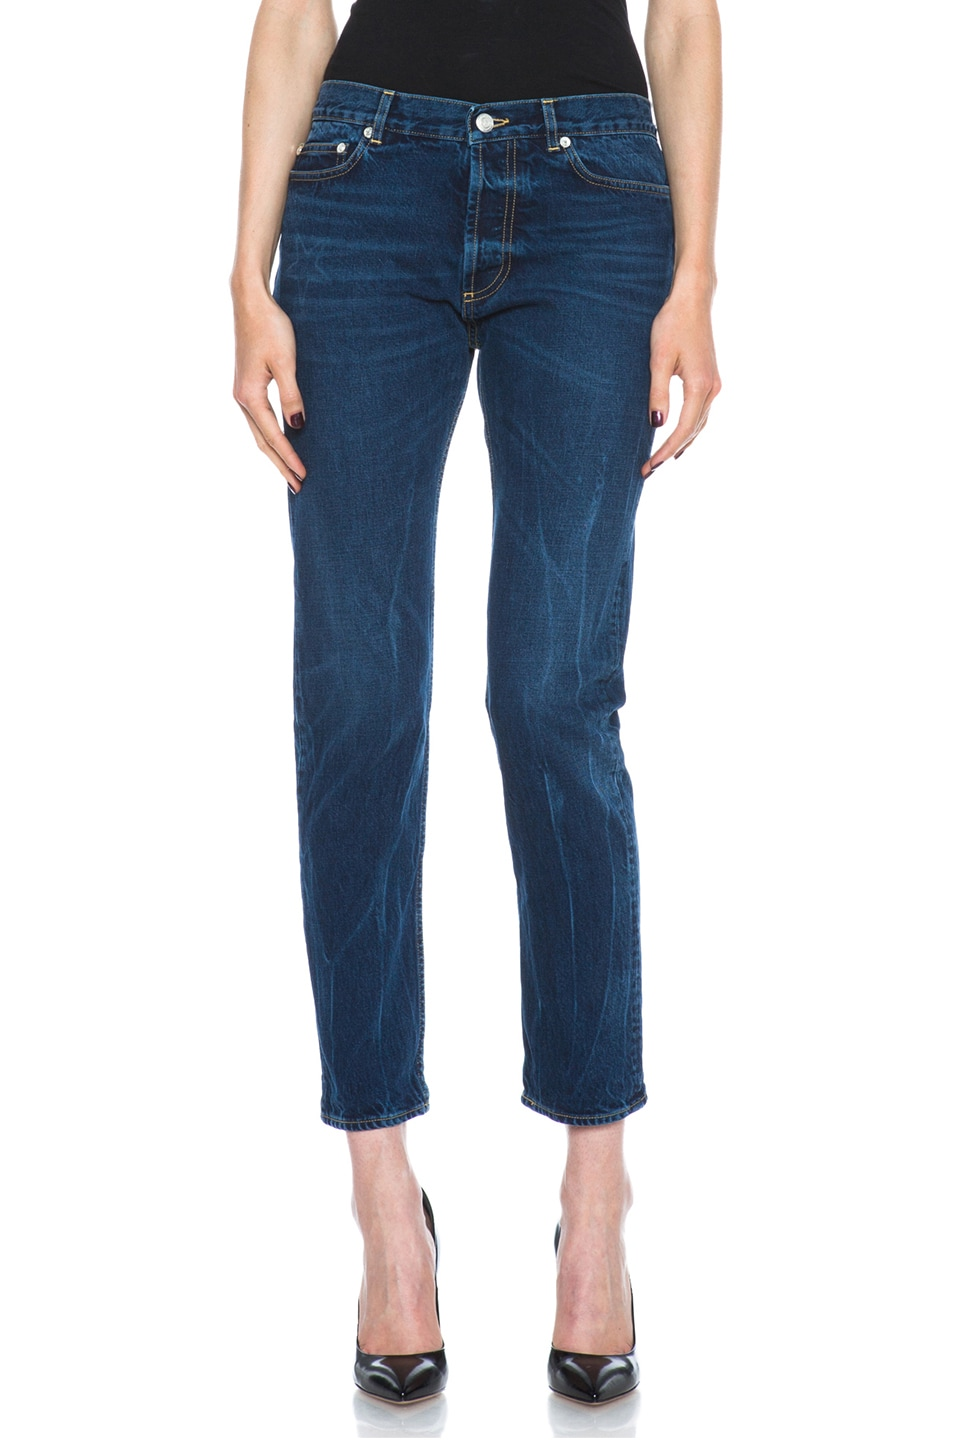 Image 1 of Golden Goose Jeans Dark Wash in Blue